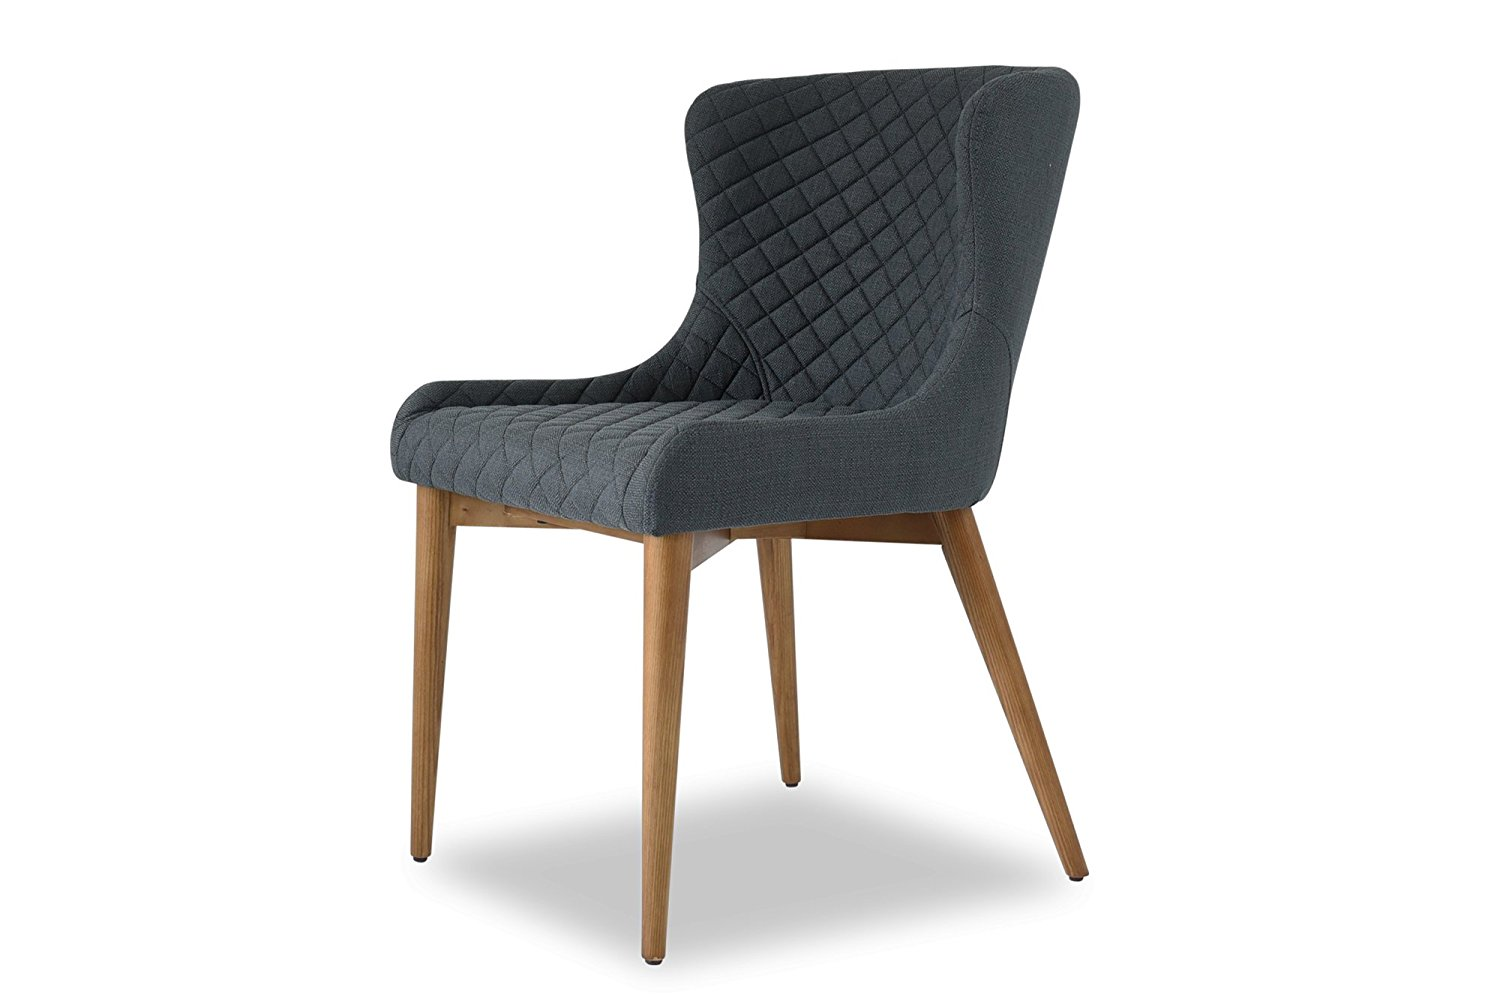 Cheap Modern Chairs India Find Modern Chairs India Deals On